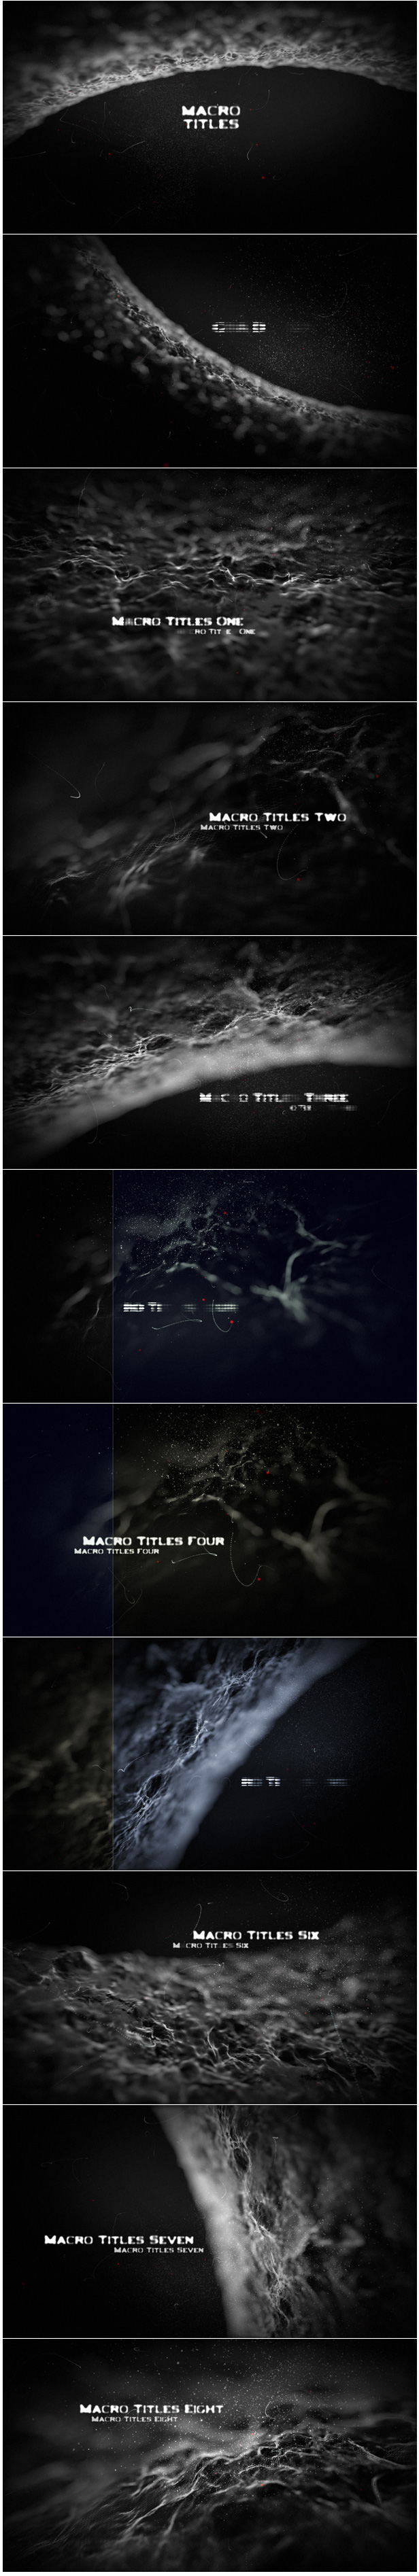 Titles Macro After Effects Template for sci-fi movies, medical trailers, medicine titles